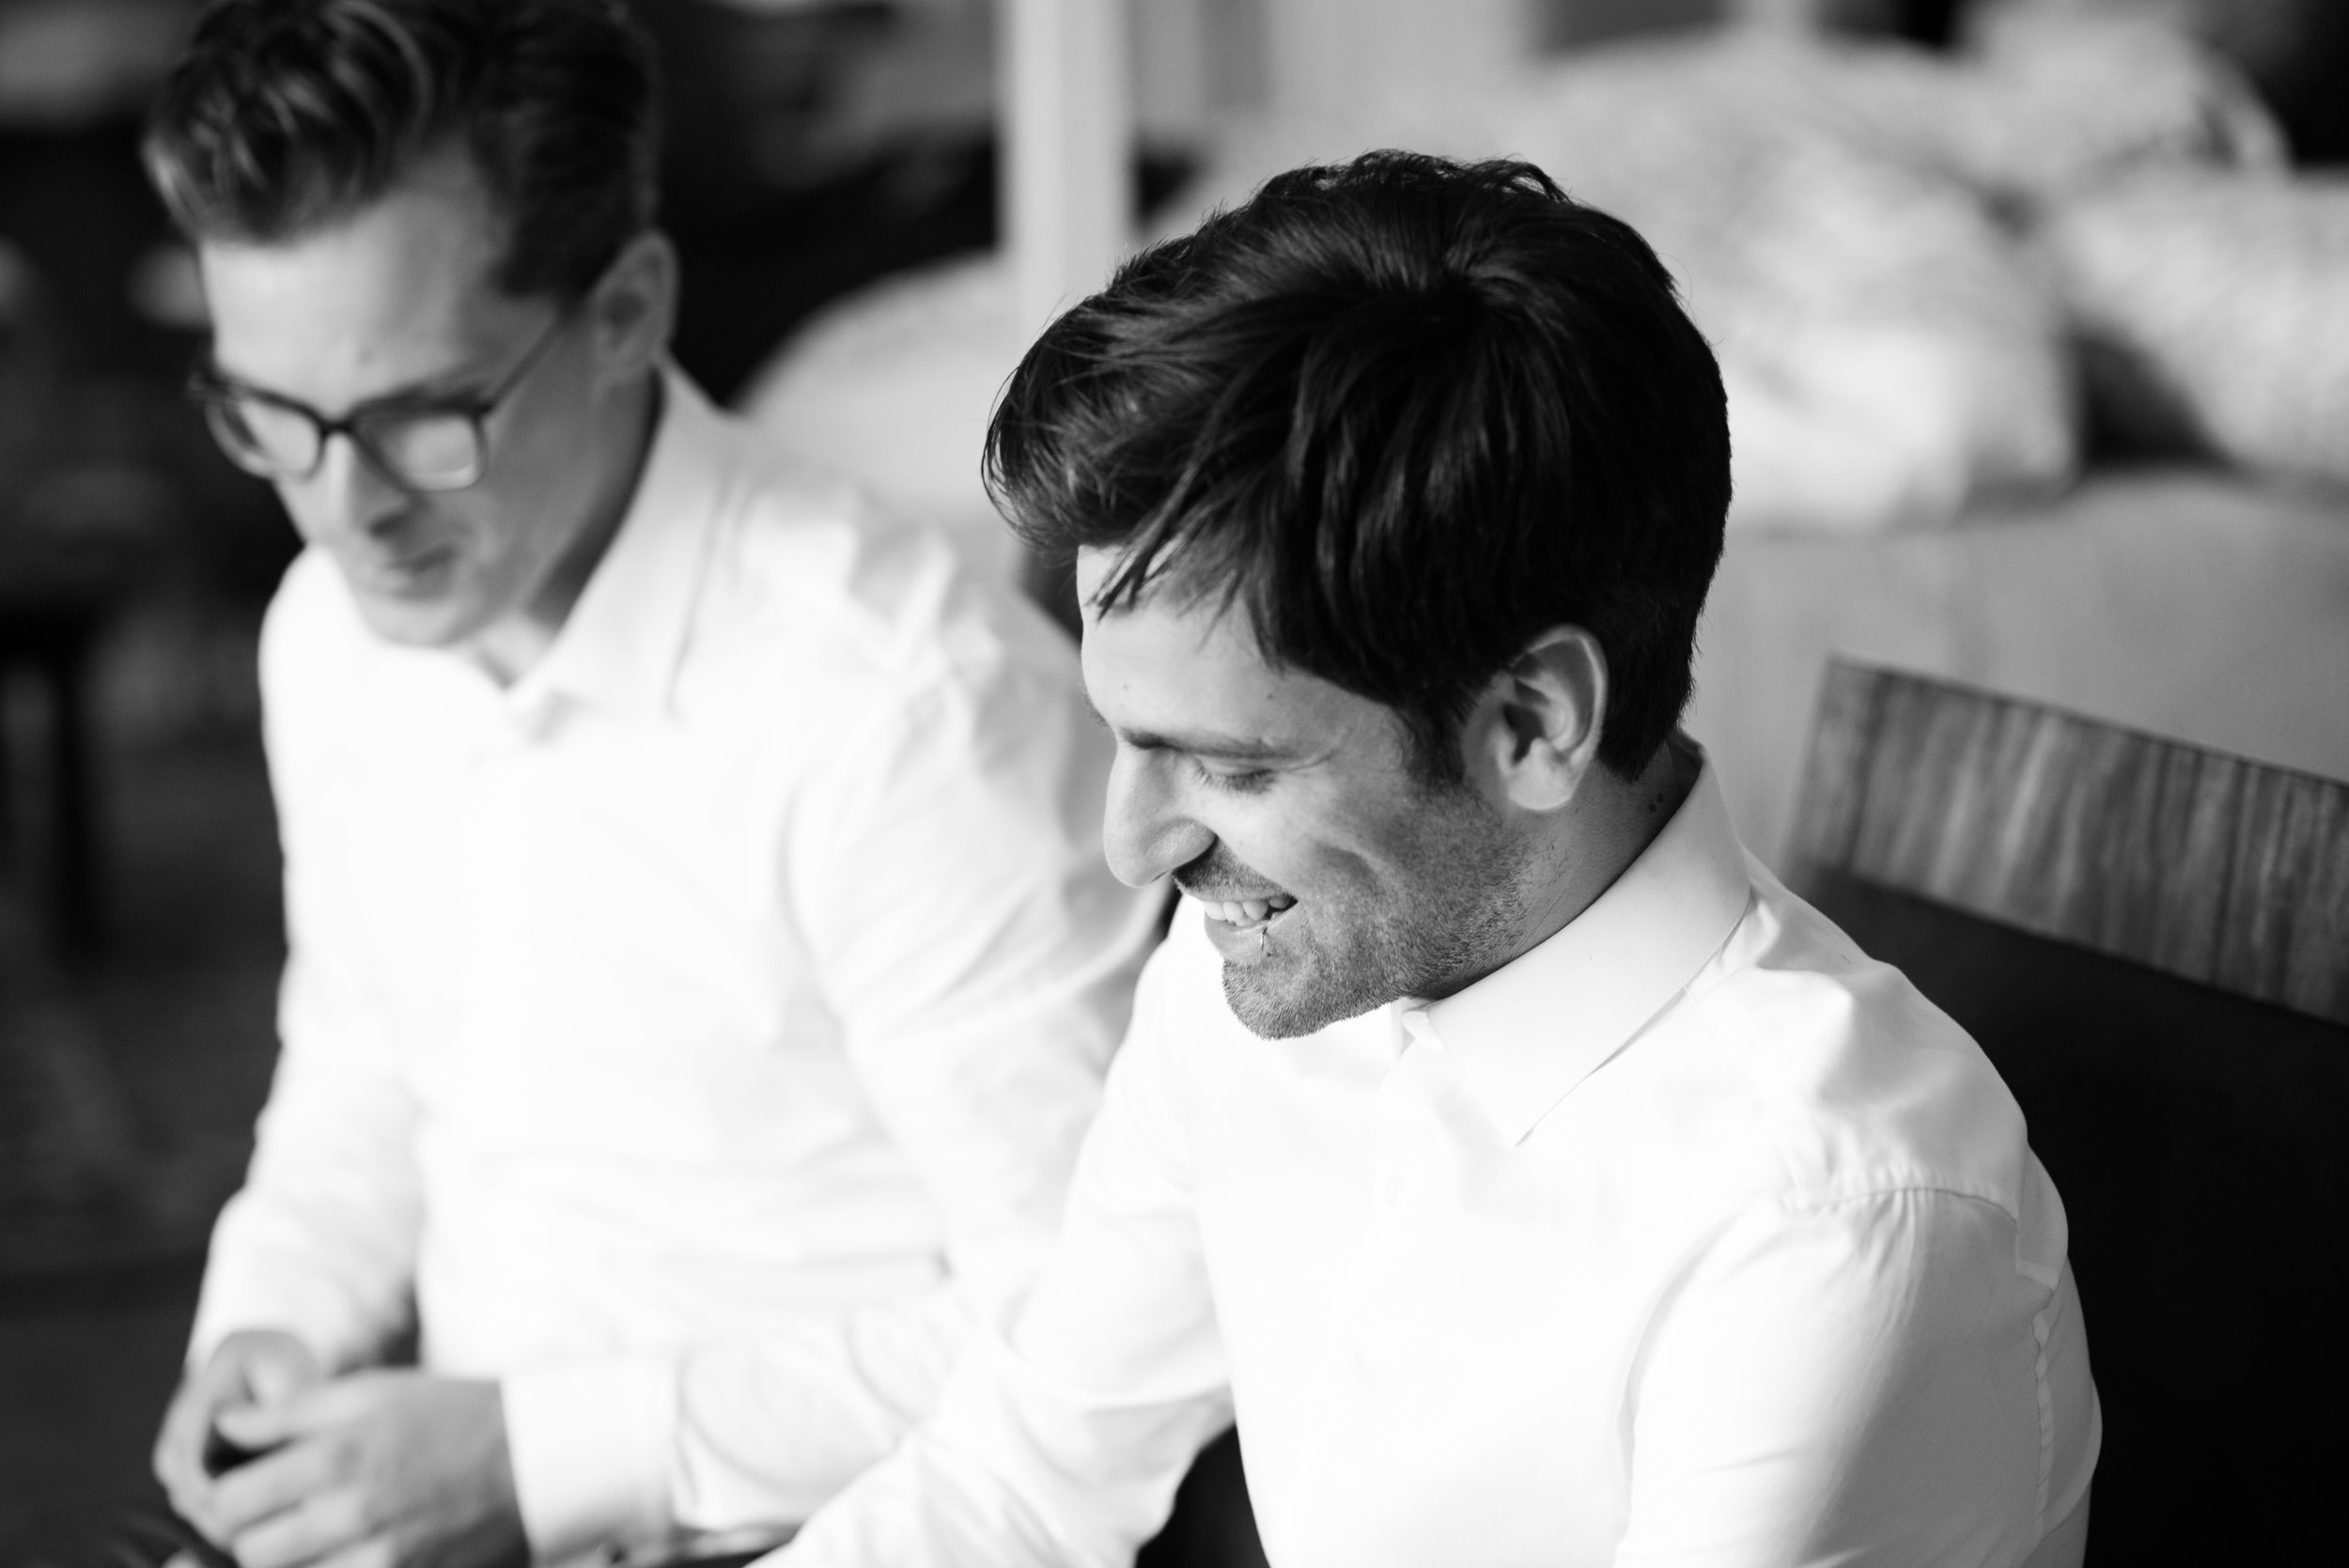 The groom and best man get ready // Wedding photos by Karmel Kreative // Plant Based Bride